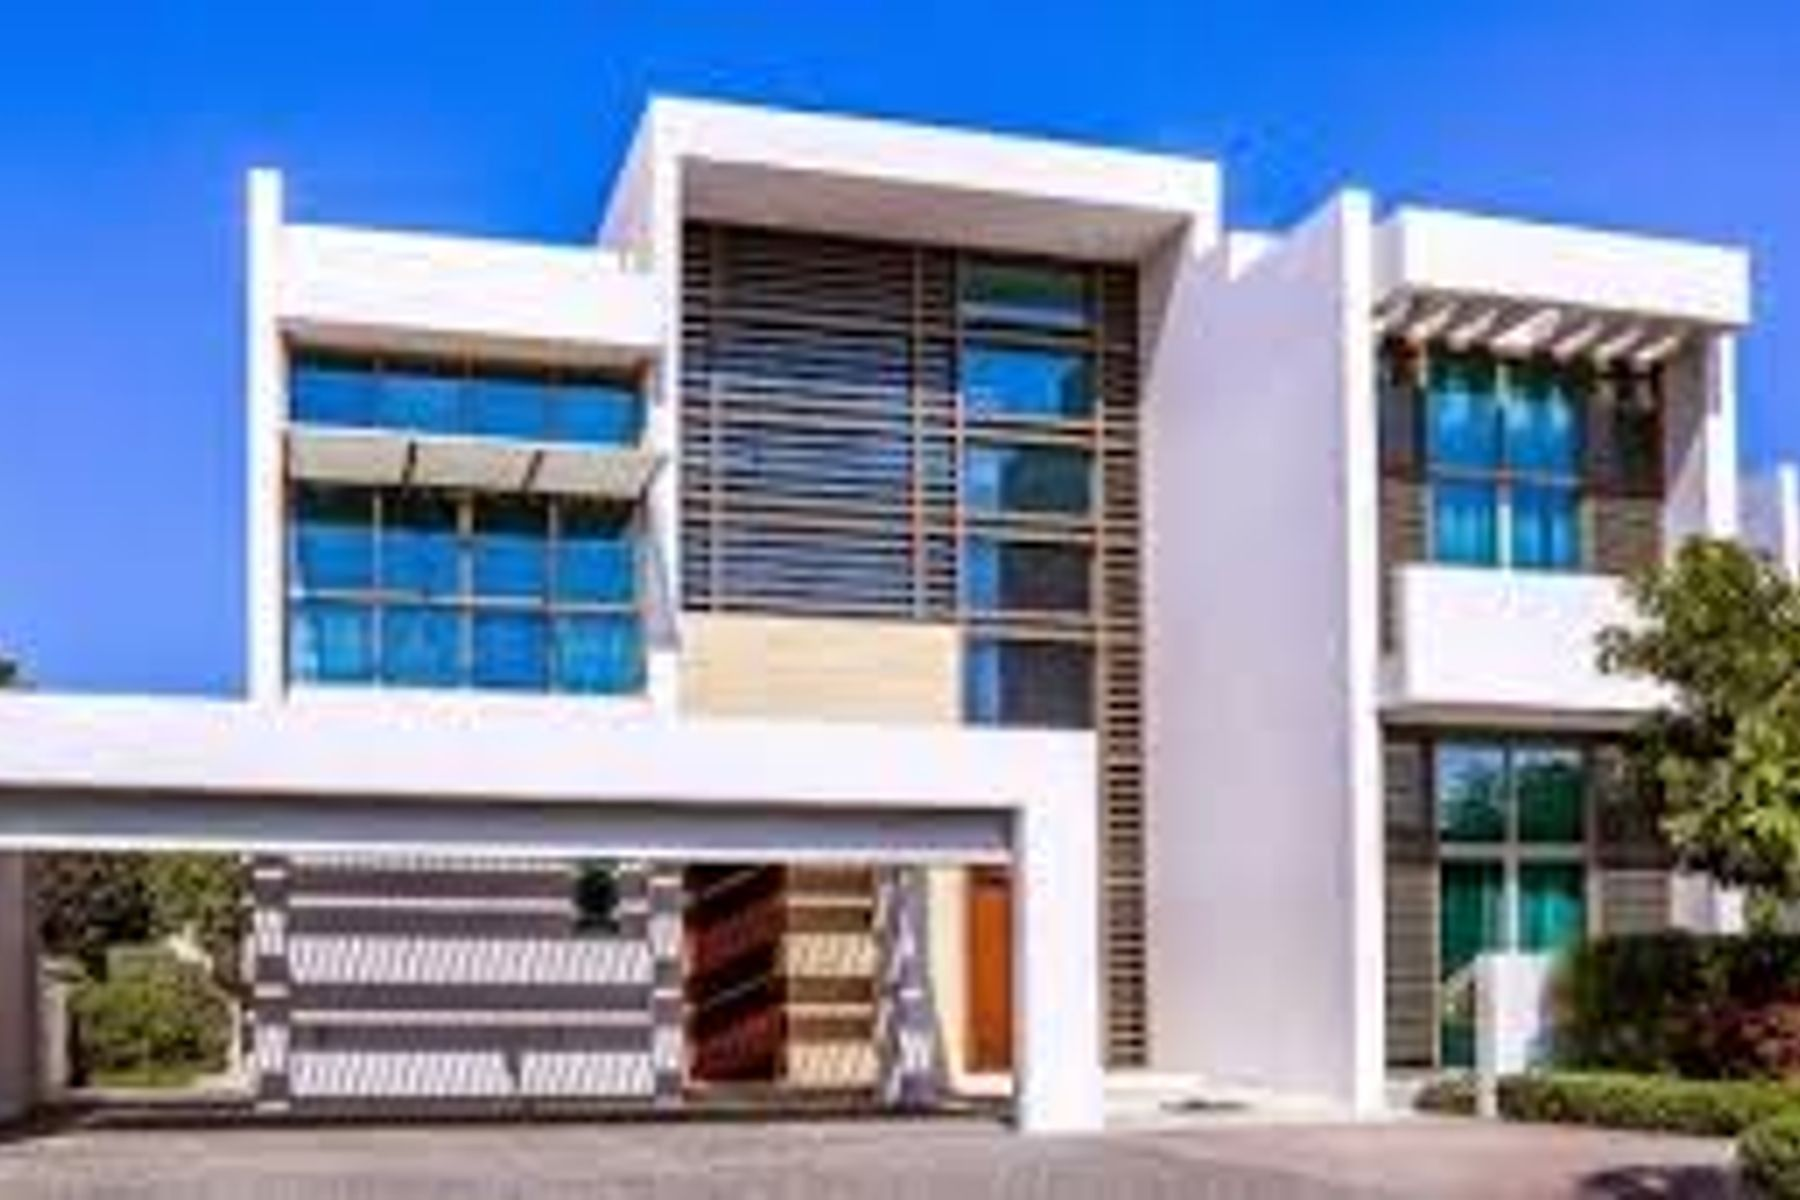 OWN AN ASTONISHING 5 BEDS VILLA MBR CITY